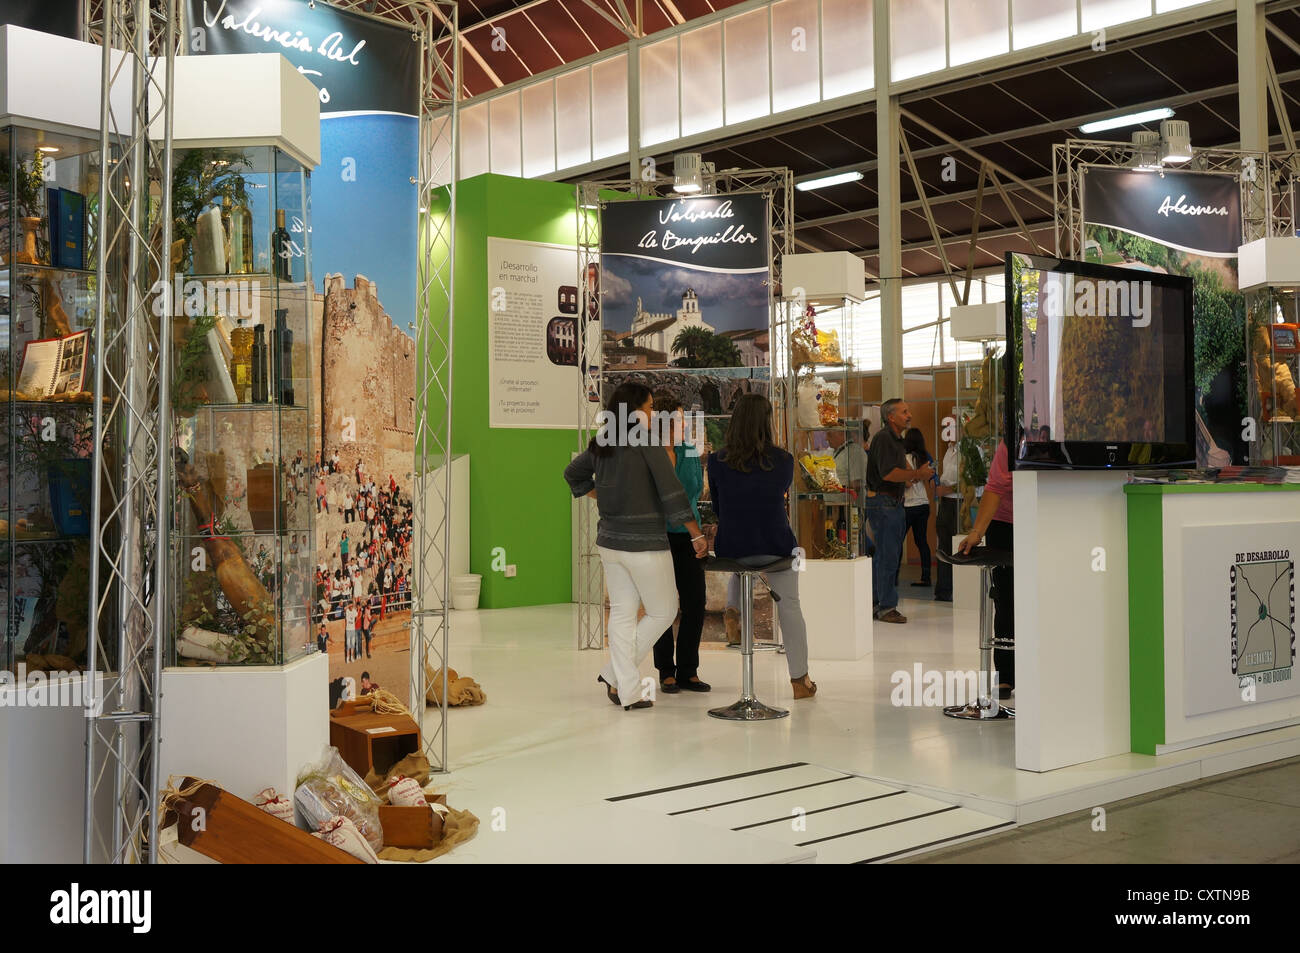 the participantes visit fair International Livestock agro-industrial exhibition, Area Agro-Food Products, at Zafra, Stock Photo